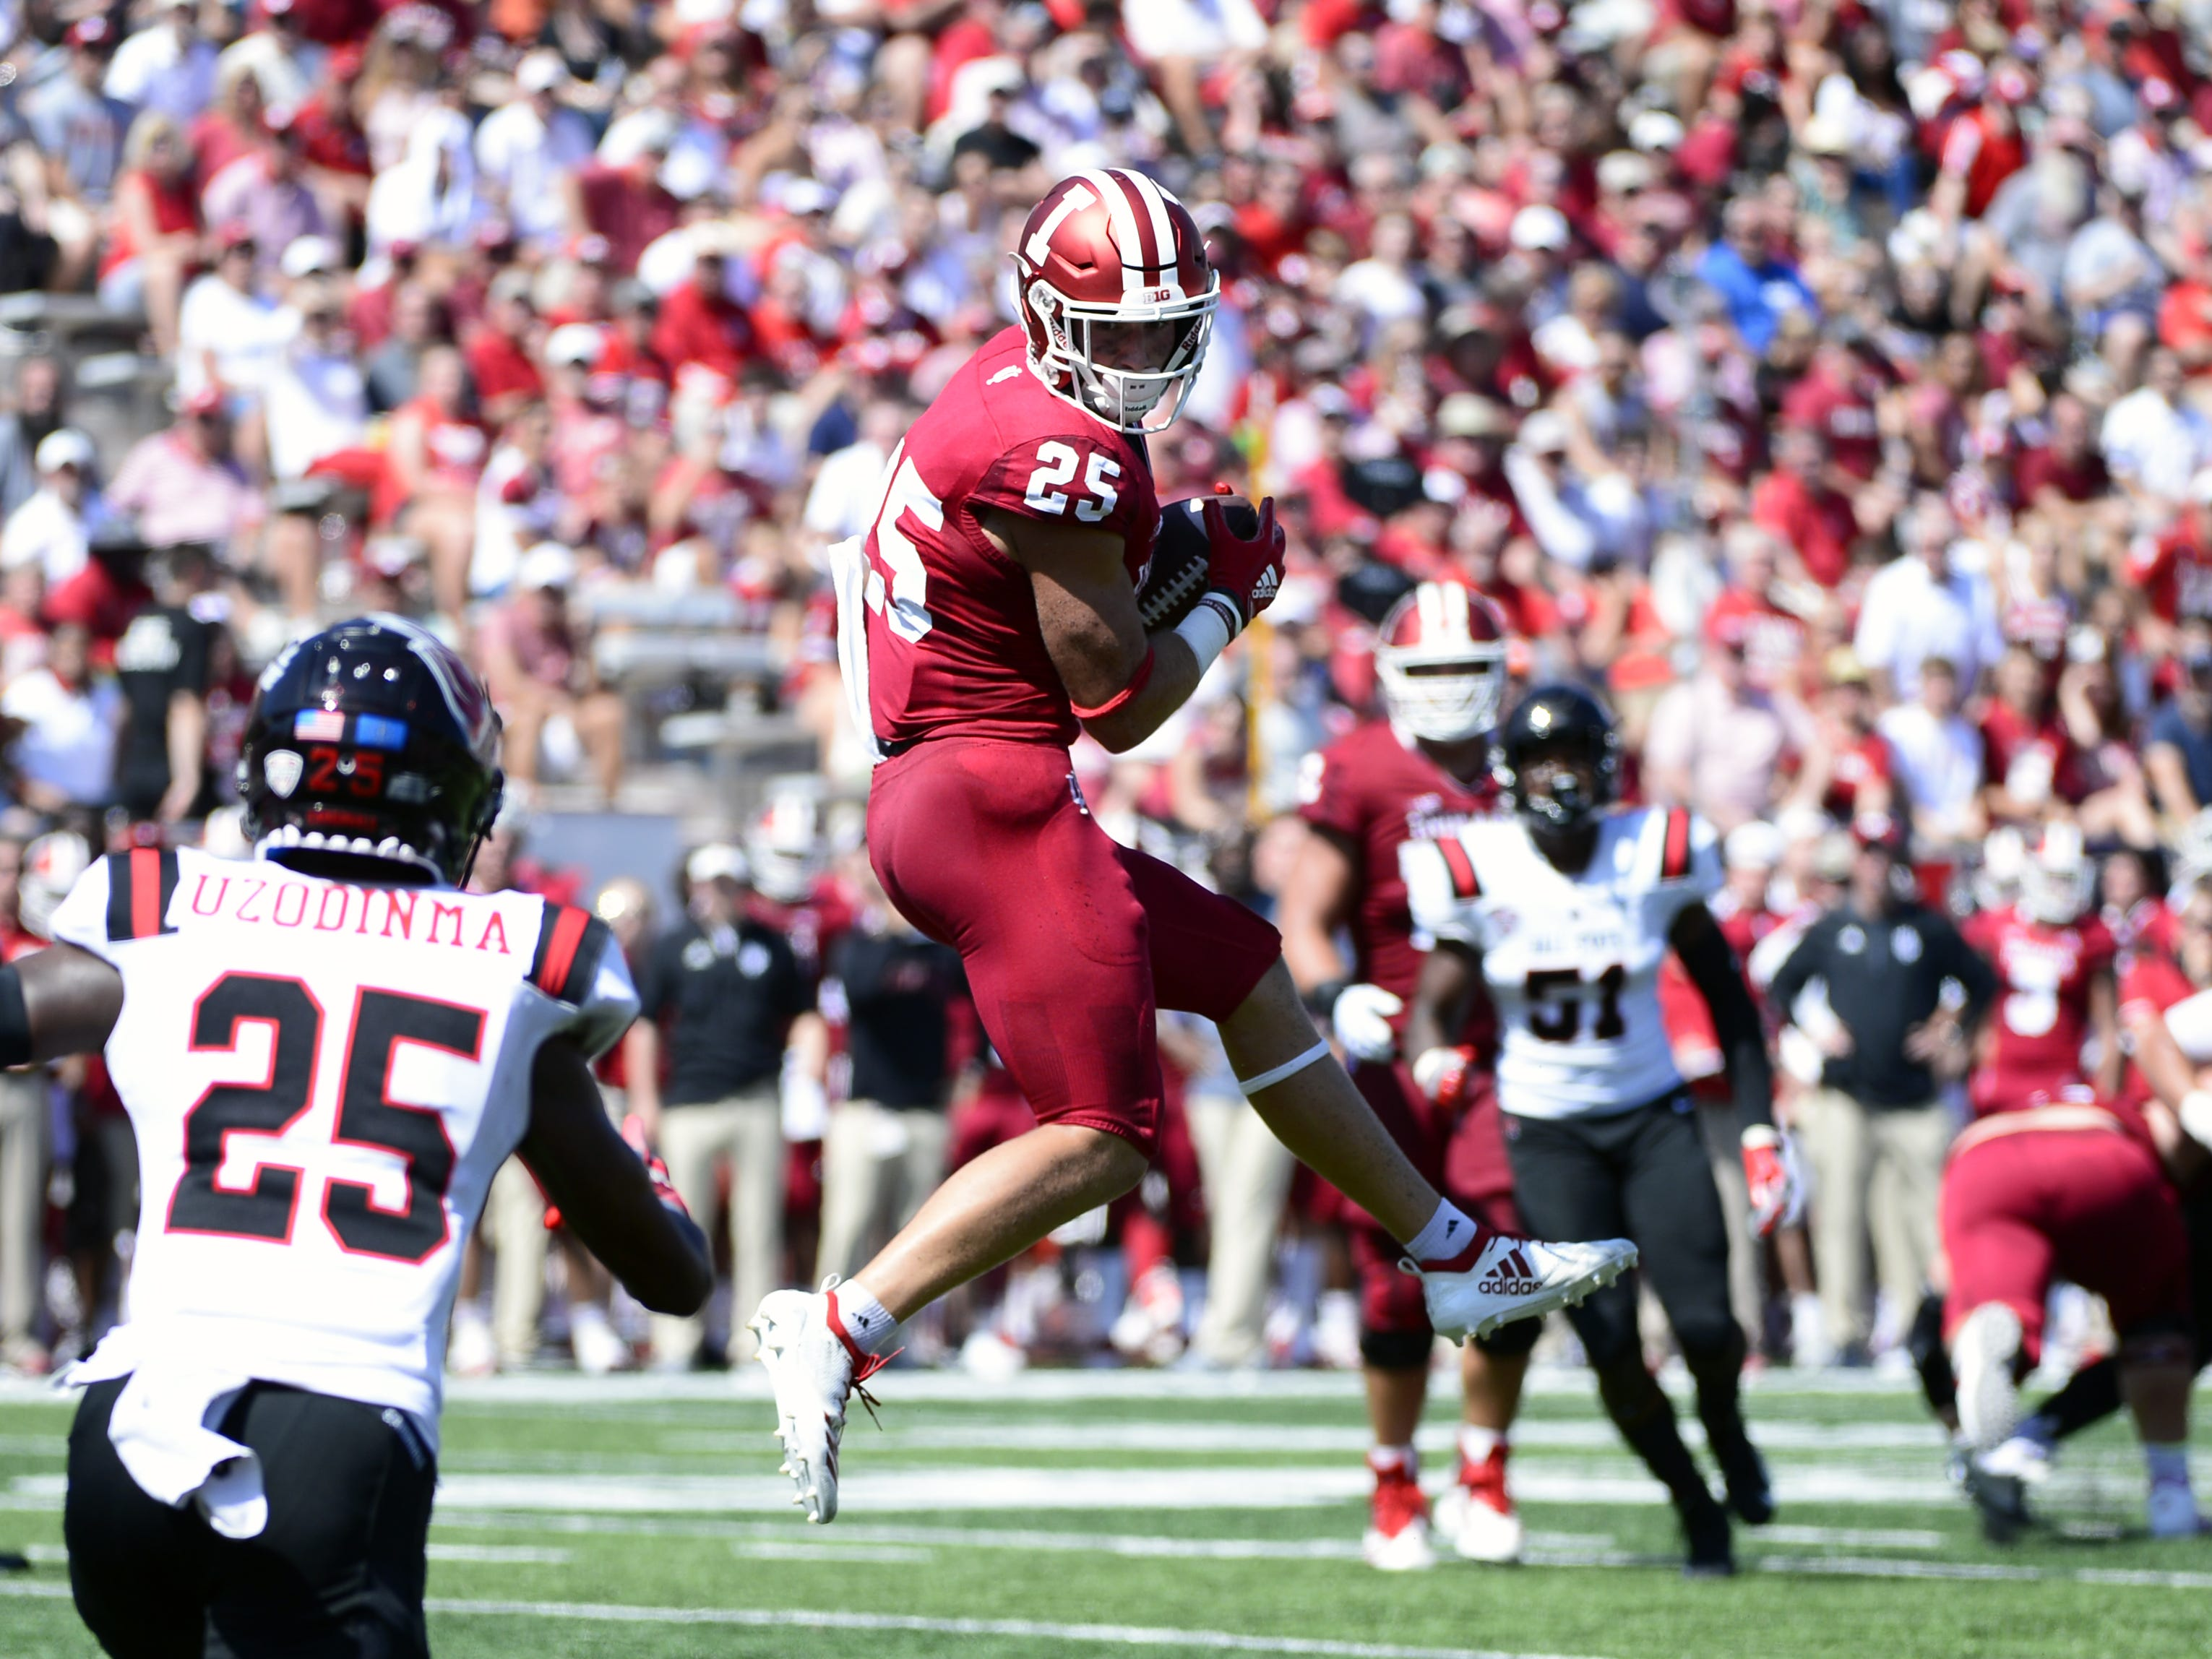 Indiana Hoosiers wide receiver Luke Timian (25) catches a pass during the game against Ball State at Memorial Stadium in Bloomington, Ind., on Saturday, Sept. 15, 2018.